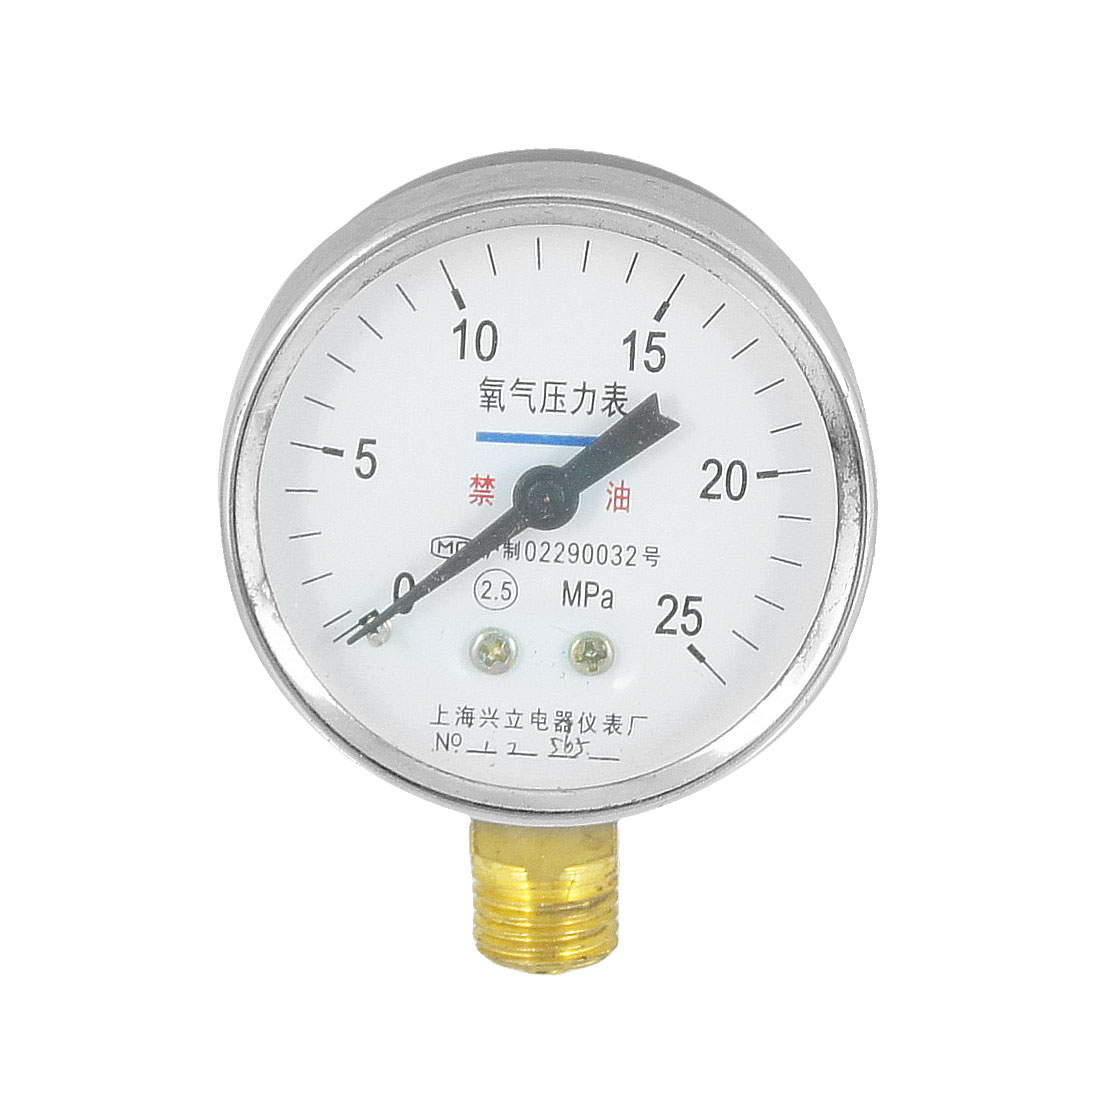 "25 MPa Accuracy Class 2.5 Round Dial 3/8"" NPT Pneumatic Pressure Gauge Tool"